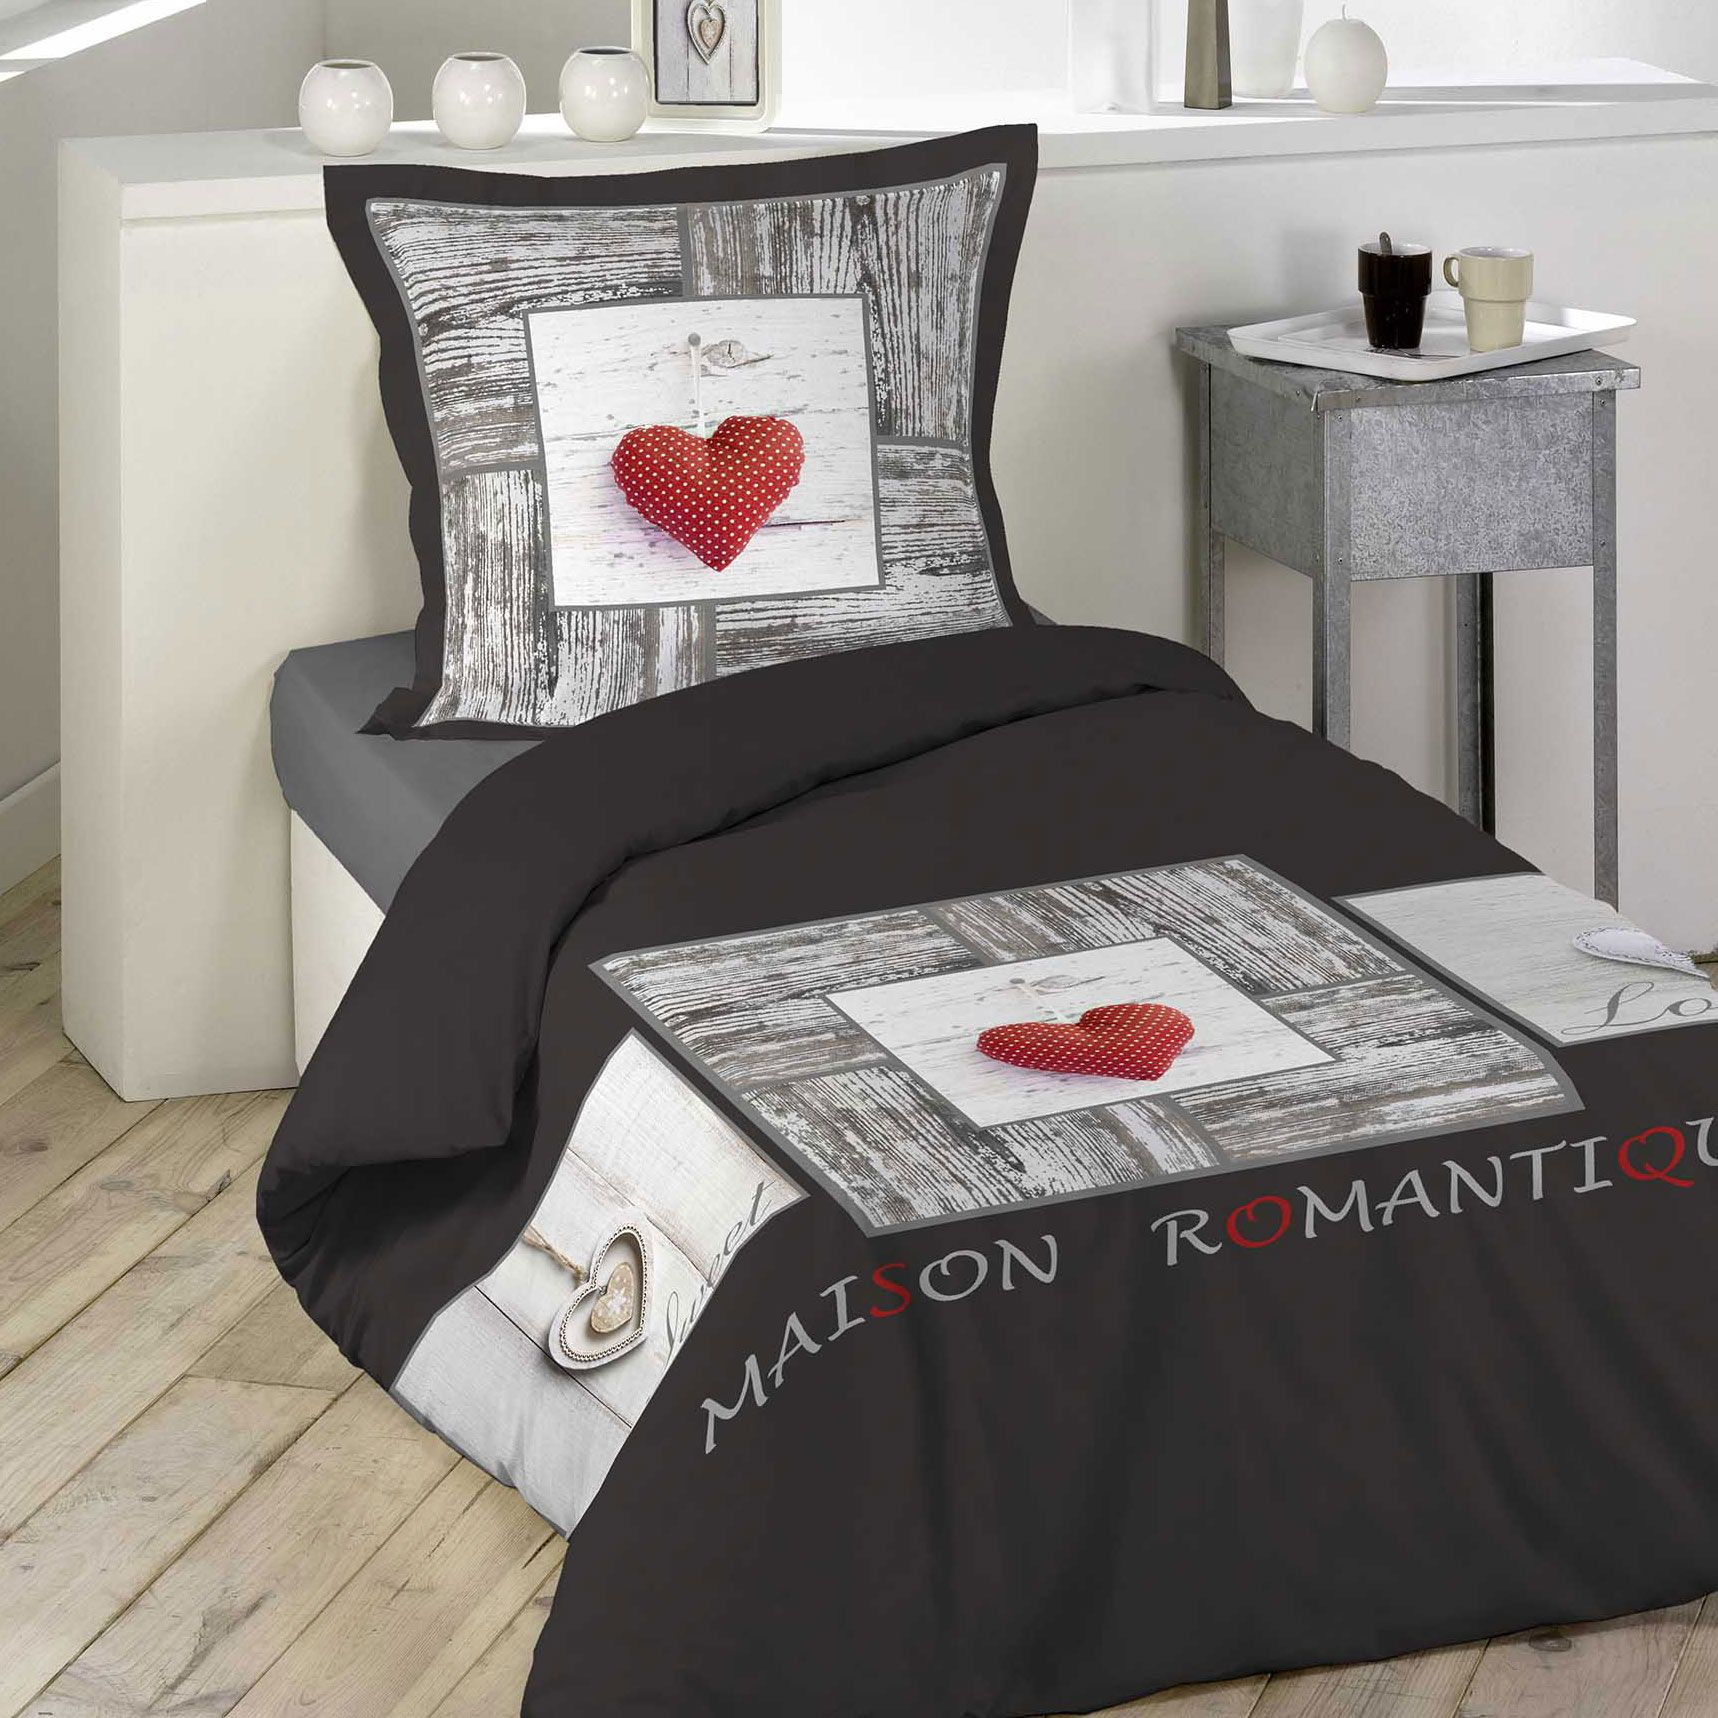 housse de couette et taie coeur romantique 100 coton 140 cm gris anthracite housse de. Black Bedroom Furniture Sets. Home Design Ideas